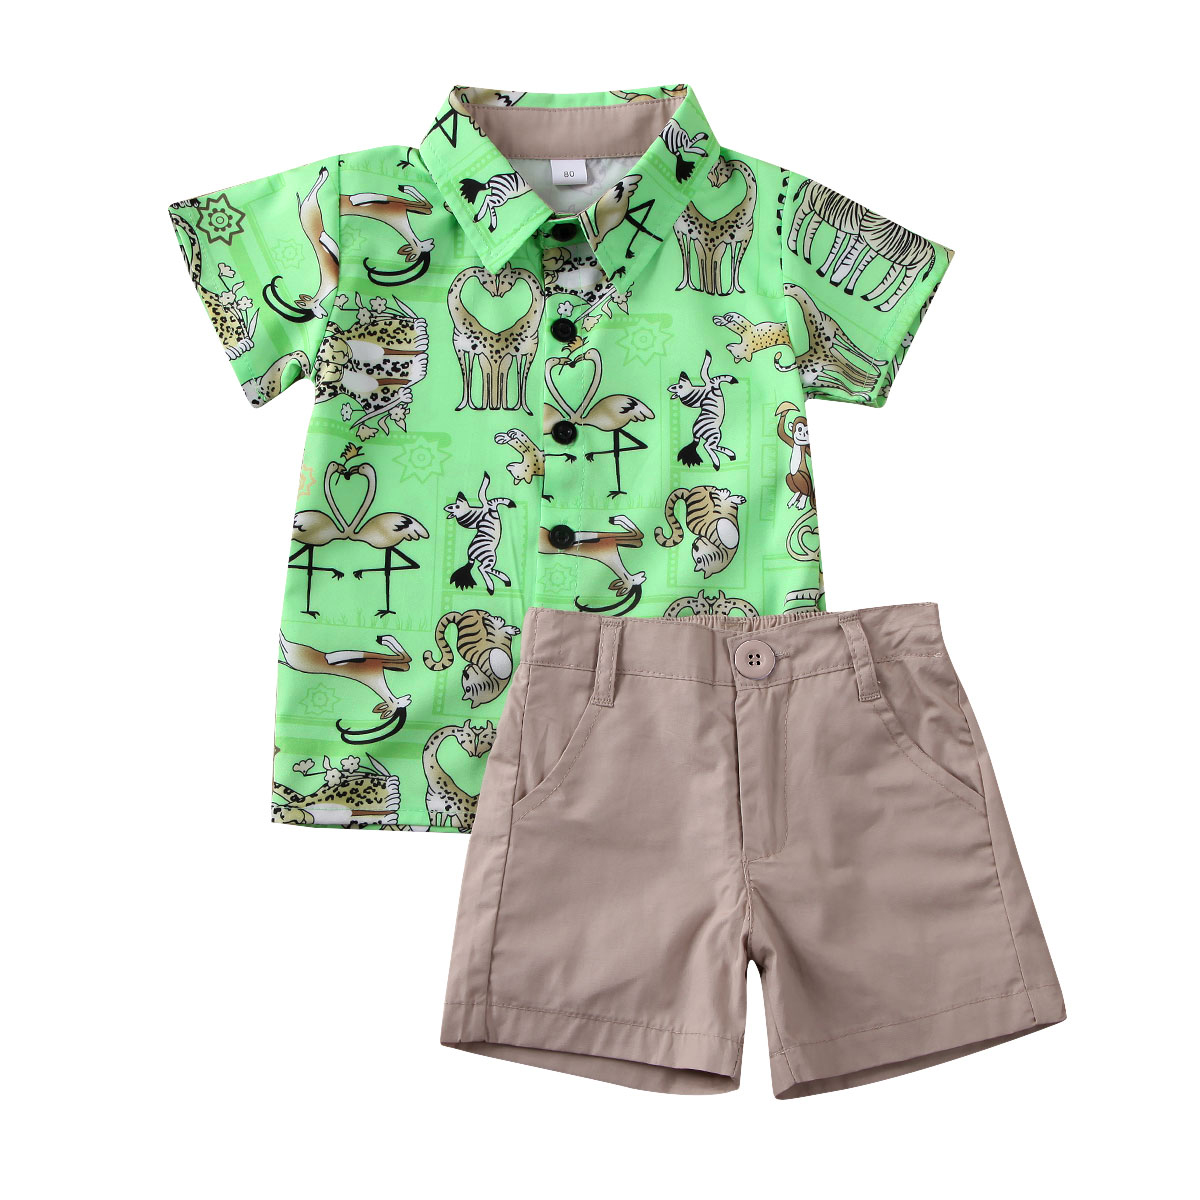 2pcs Toddler Baby Boys Kids Shirt Tops Shorts Outfits Gentleman Set